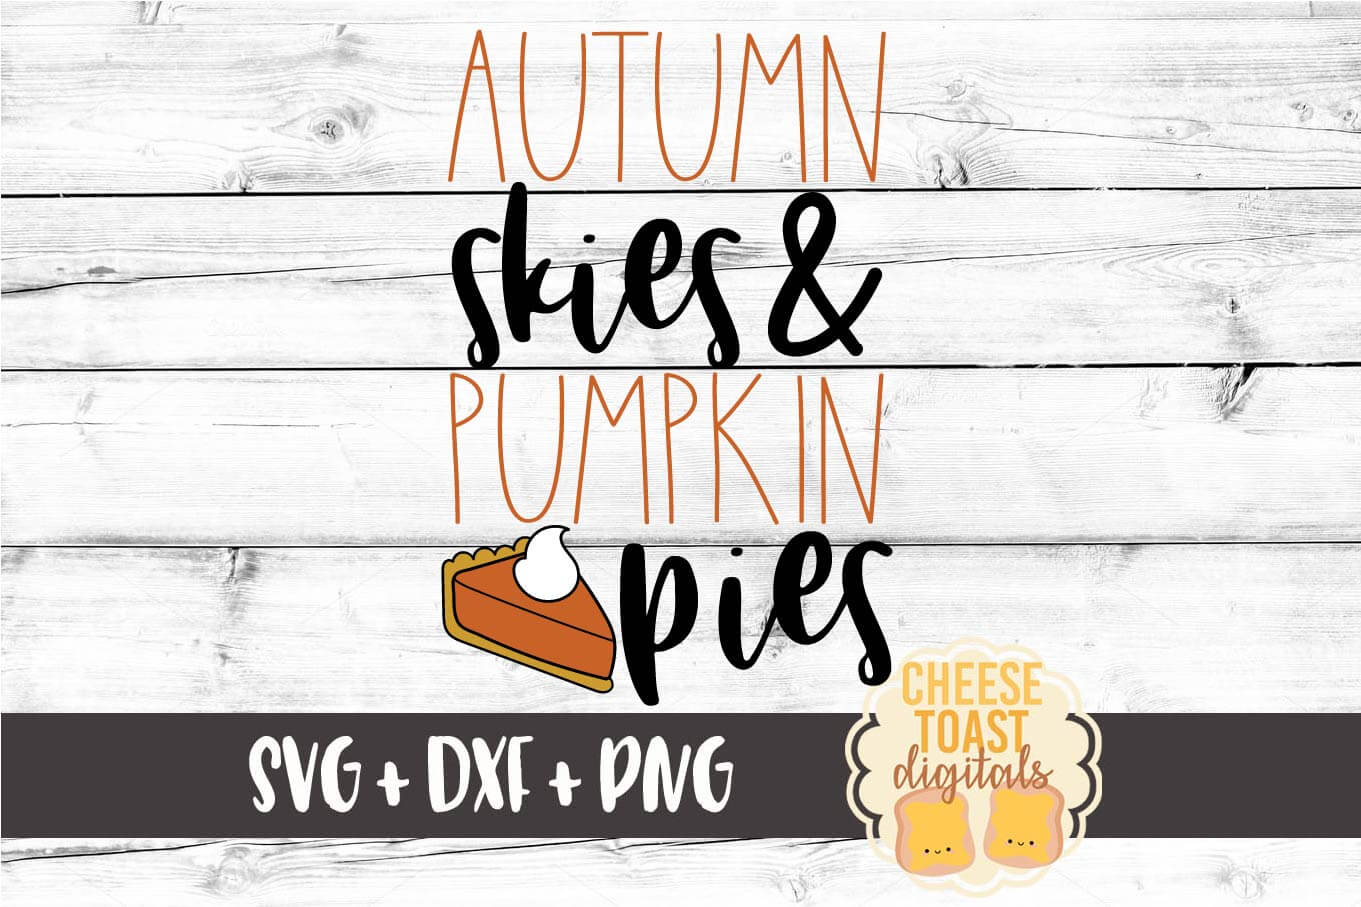 Autumn Skies and Pumpkin Pies - Fall SVG File example image 2